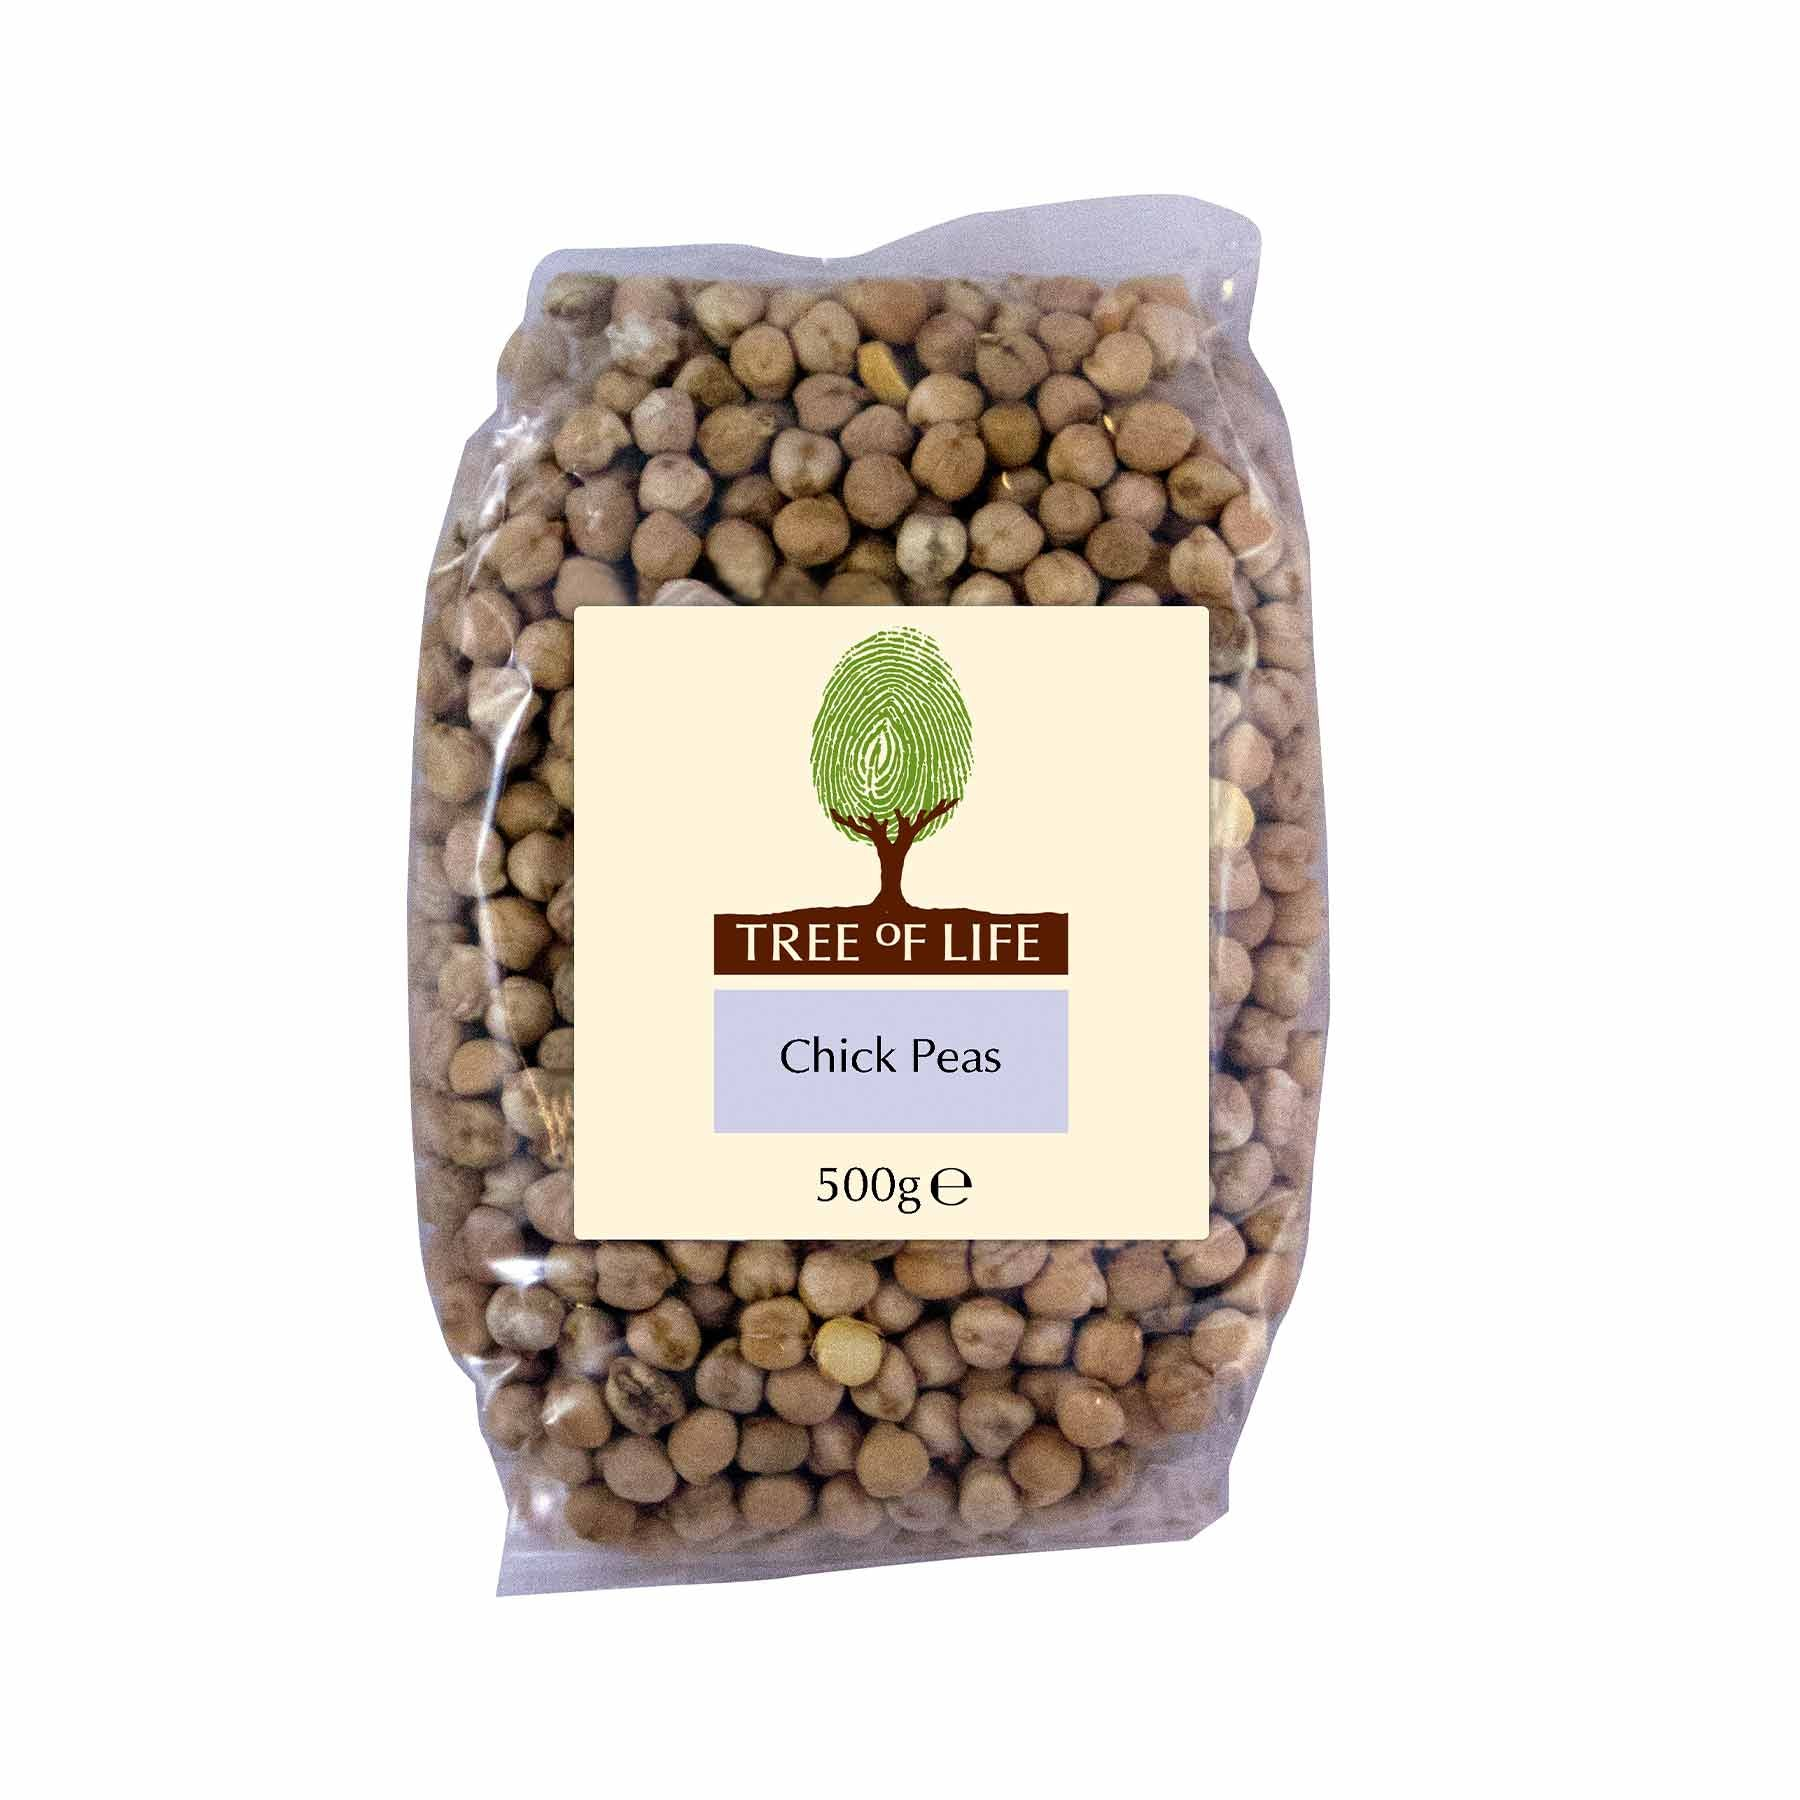 Packshot - Chick Peas by Tree of Life